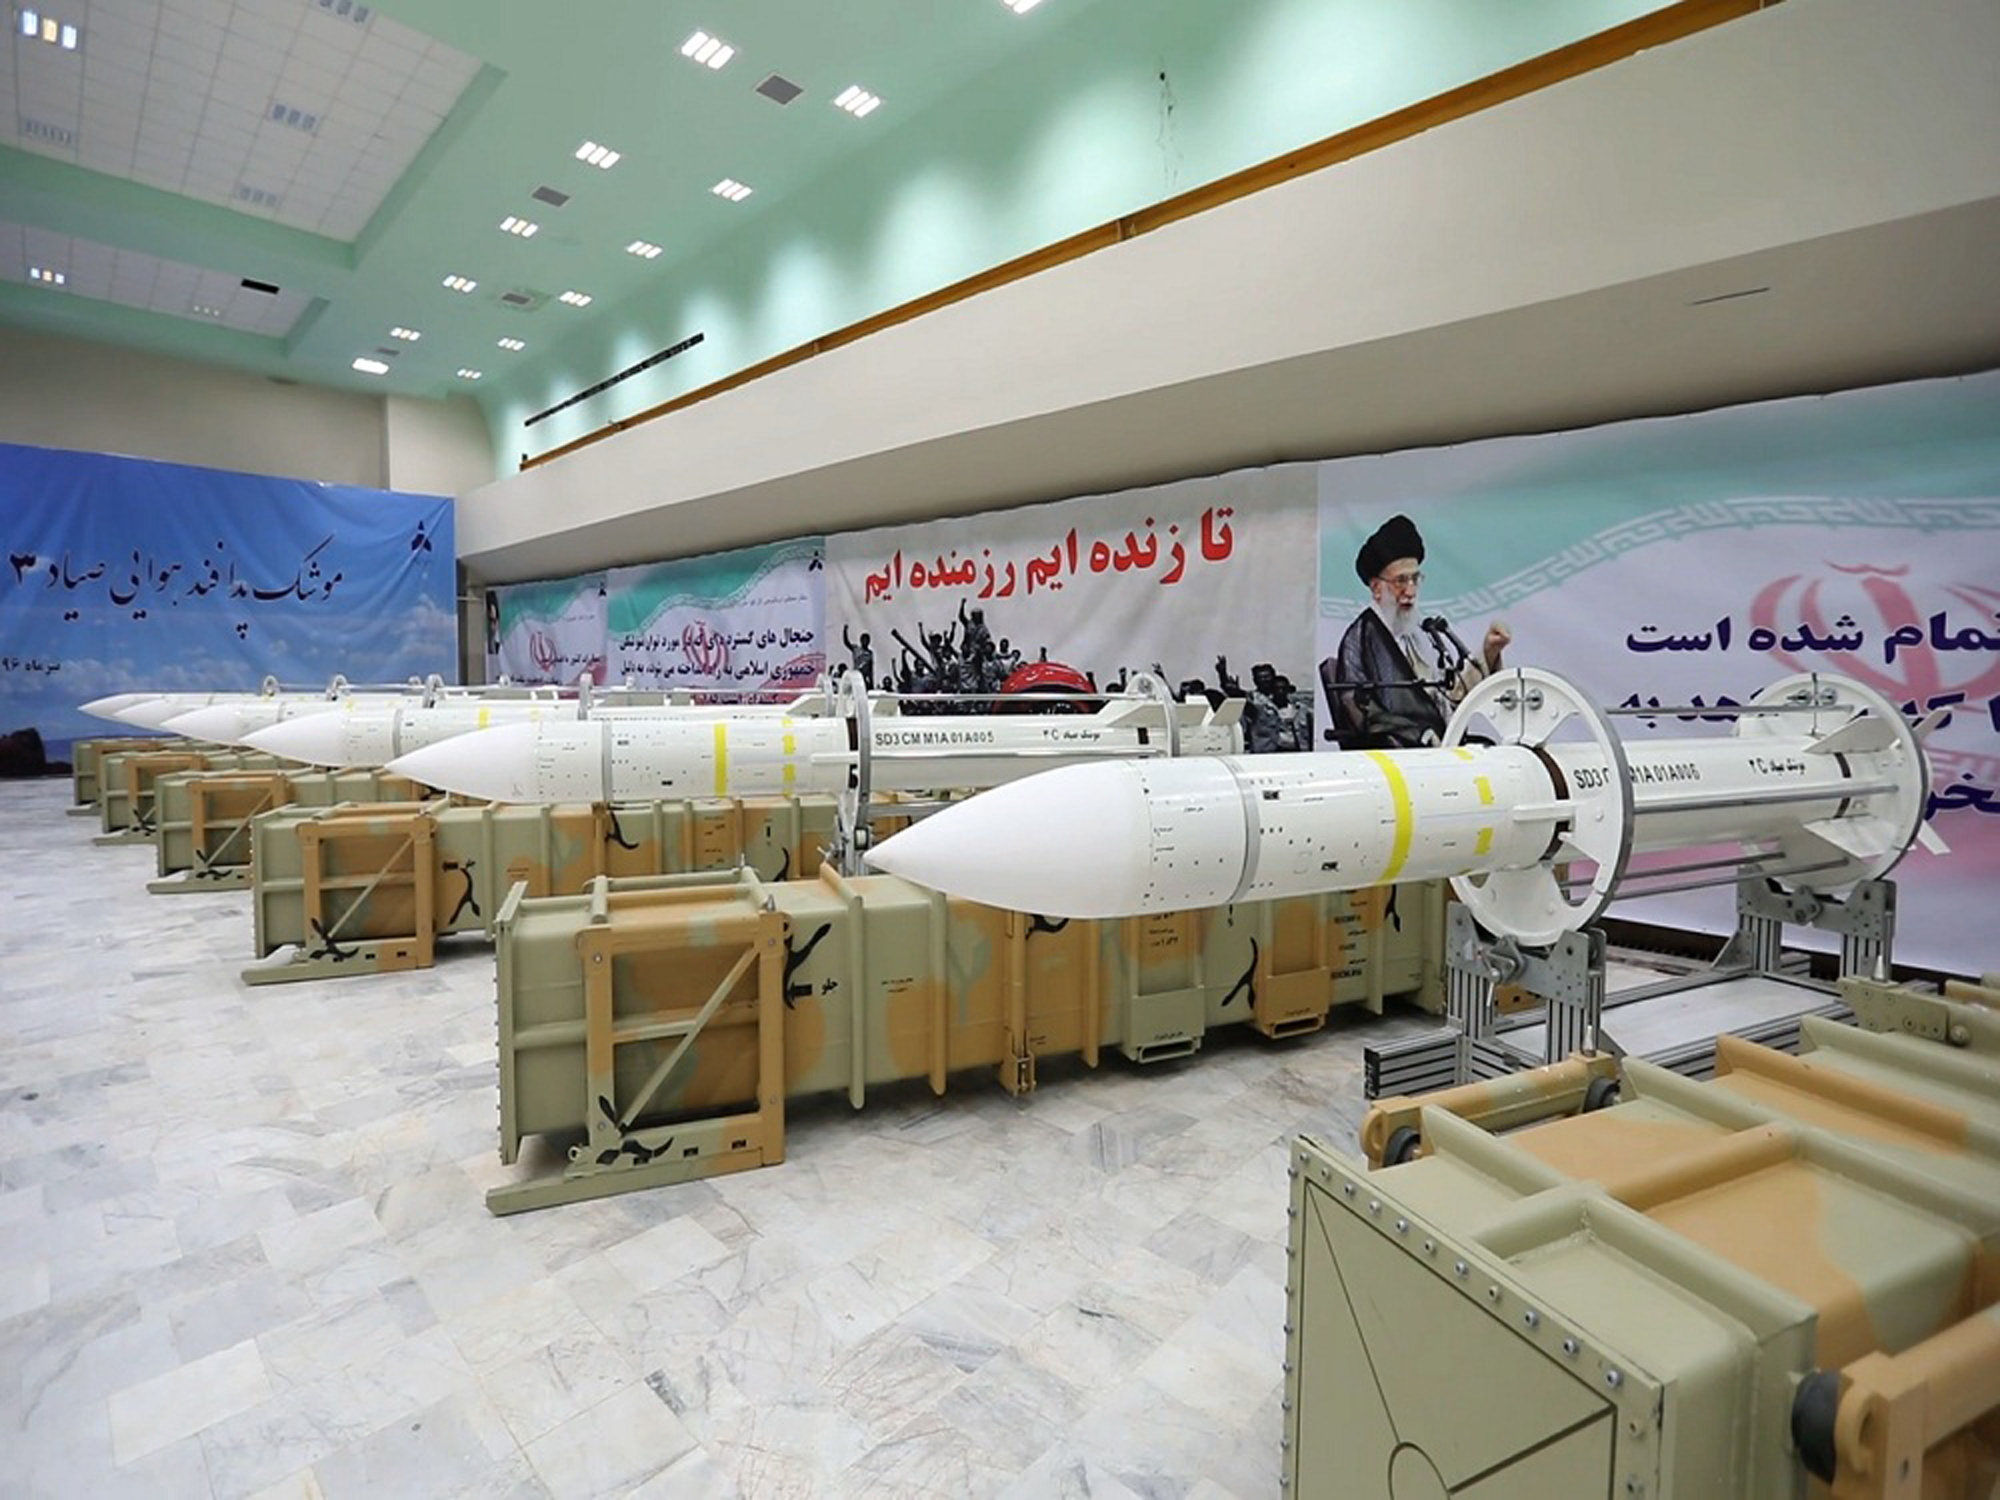 This picture released by the official website of the Iranian Defense Ministry on Saturday, July 22, 2017, shows Sayyad-3 air defense missiles during inauguration of its production line at an undisclosed location, Iran, according to official information released. Sayyad-3 is an upgrade to previous versions of the missile